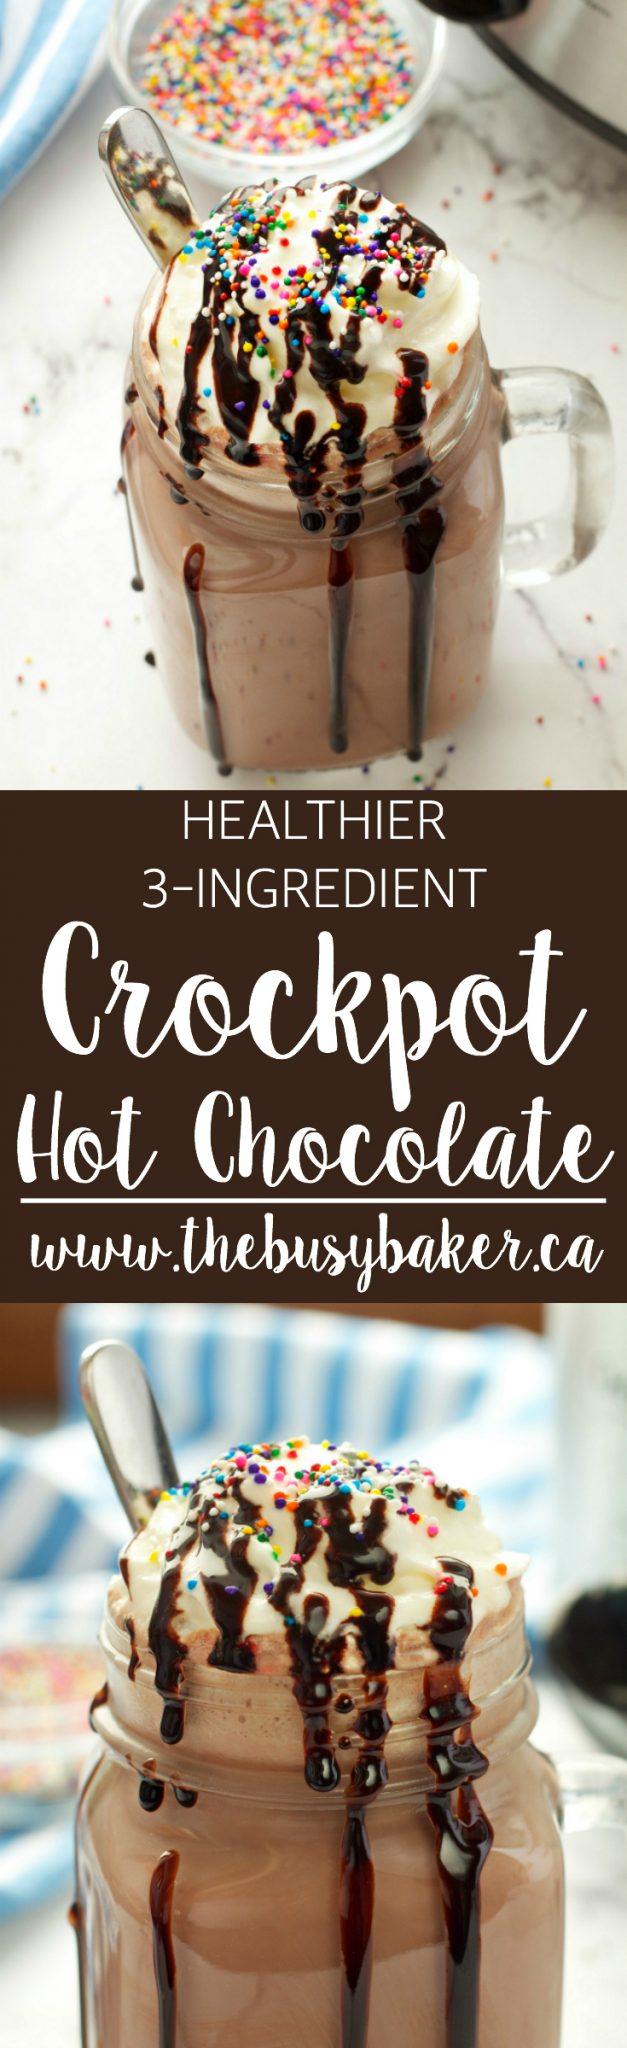 This 3 Ingredient Healthier Crock Pot Hot Chocolate is a healthy homemade choice for a warm winter drink, and it's SO easy to make! Recipe from thebusybaker.ca! via @busybakerblog